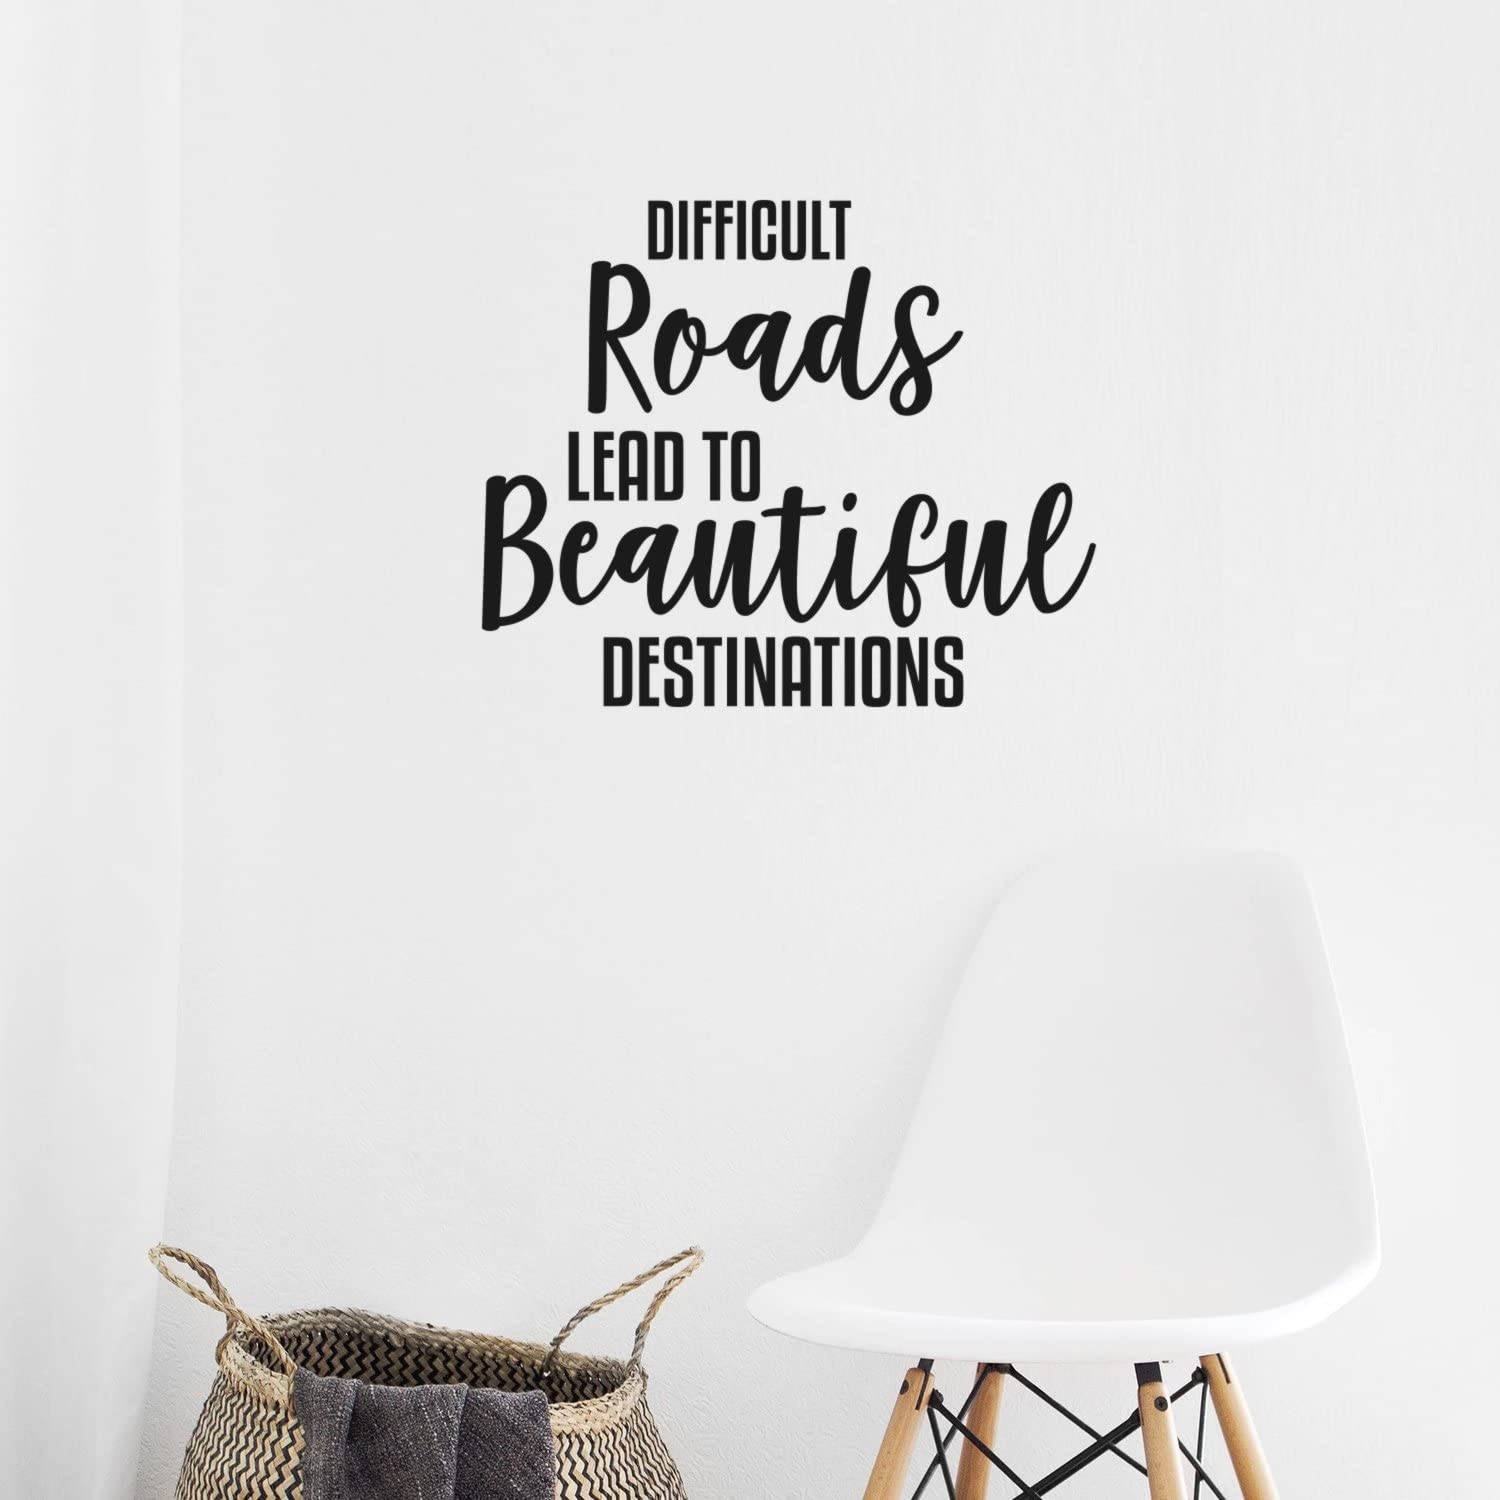 Hard Ways To Dream Destinations Inspirational Quotes Wall Sticker 17 X 20 Inch Bedroom Living Room Decor Vinyl Wall Sticker Motivational Quote Wall Sticker Amazon De Kuche Haushalt